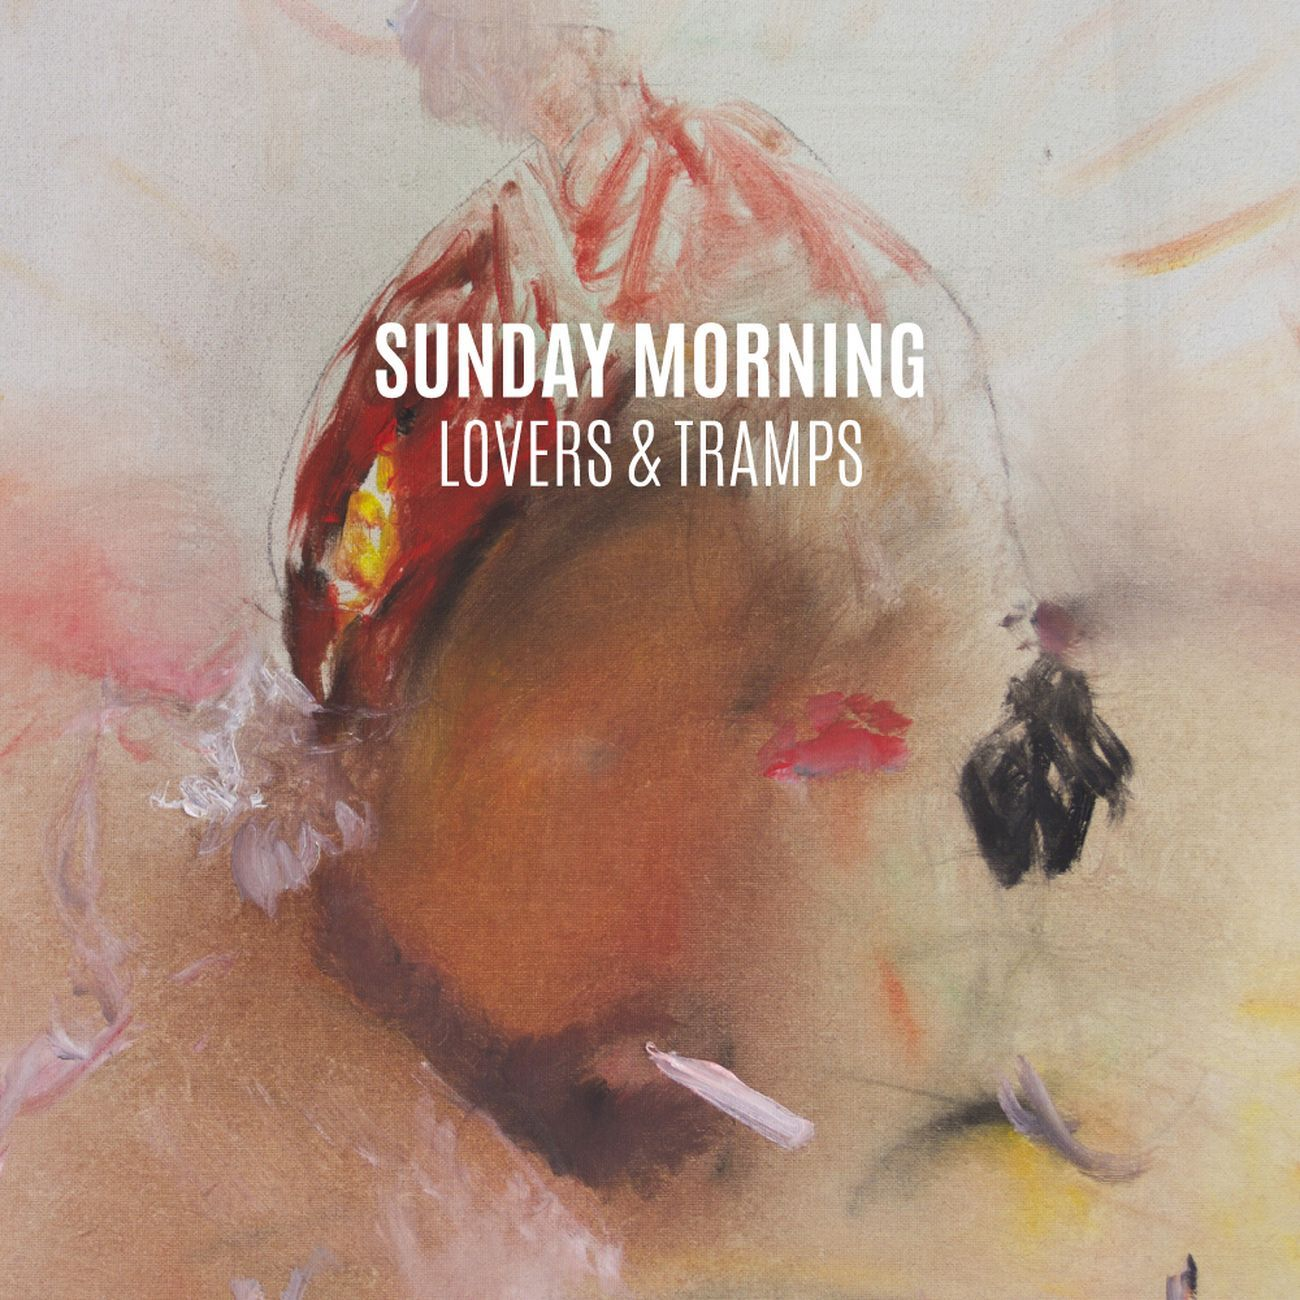 Sunday Morning, Lovers & Tramps, Bronson Recordings, copertina digitale singolo